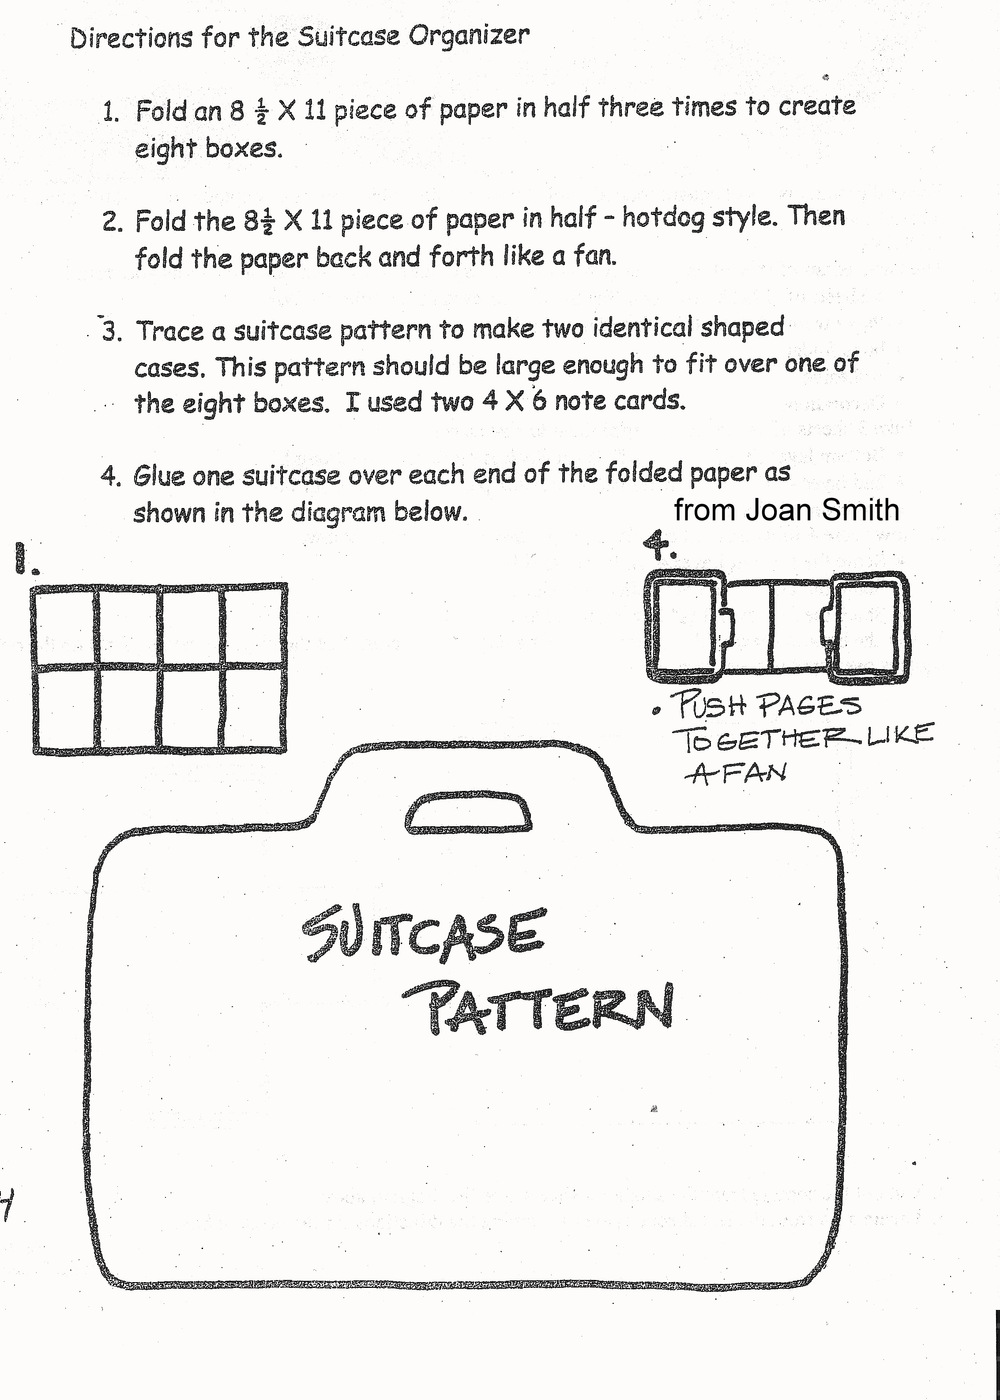 Points Suitcase Pattern and Directions